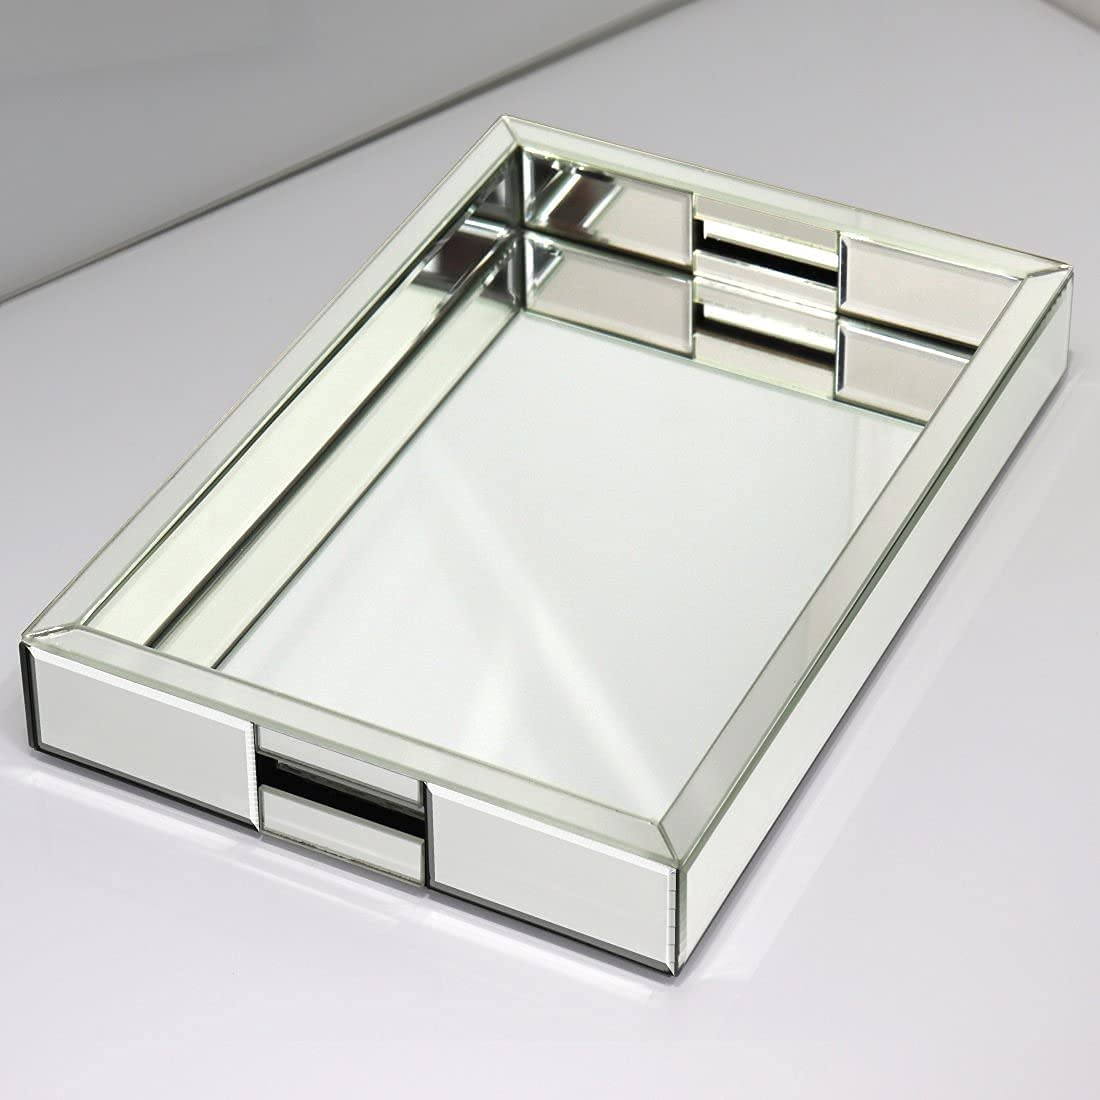 Buy Rectangle Silver Mirror Decorative Tray Size 11 Length X 14 Width X 2 Height Mirrored Vanity Organizer With Hand Markup Perfume Jewelry Tray For Bathroom Bedroom Dresser Coffee Table Qmdecor Online